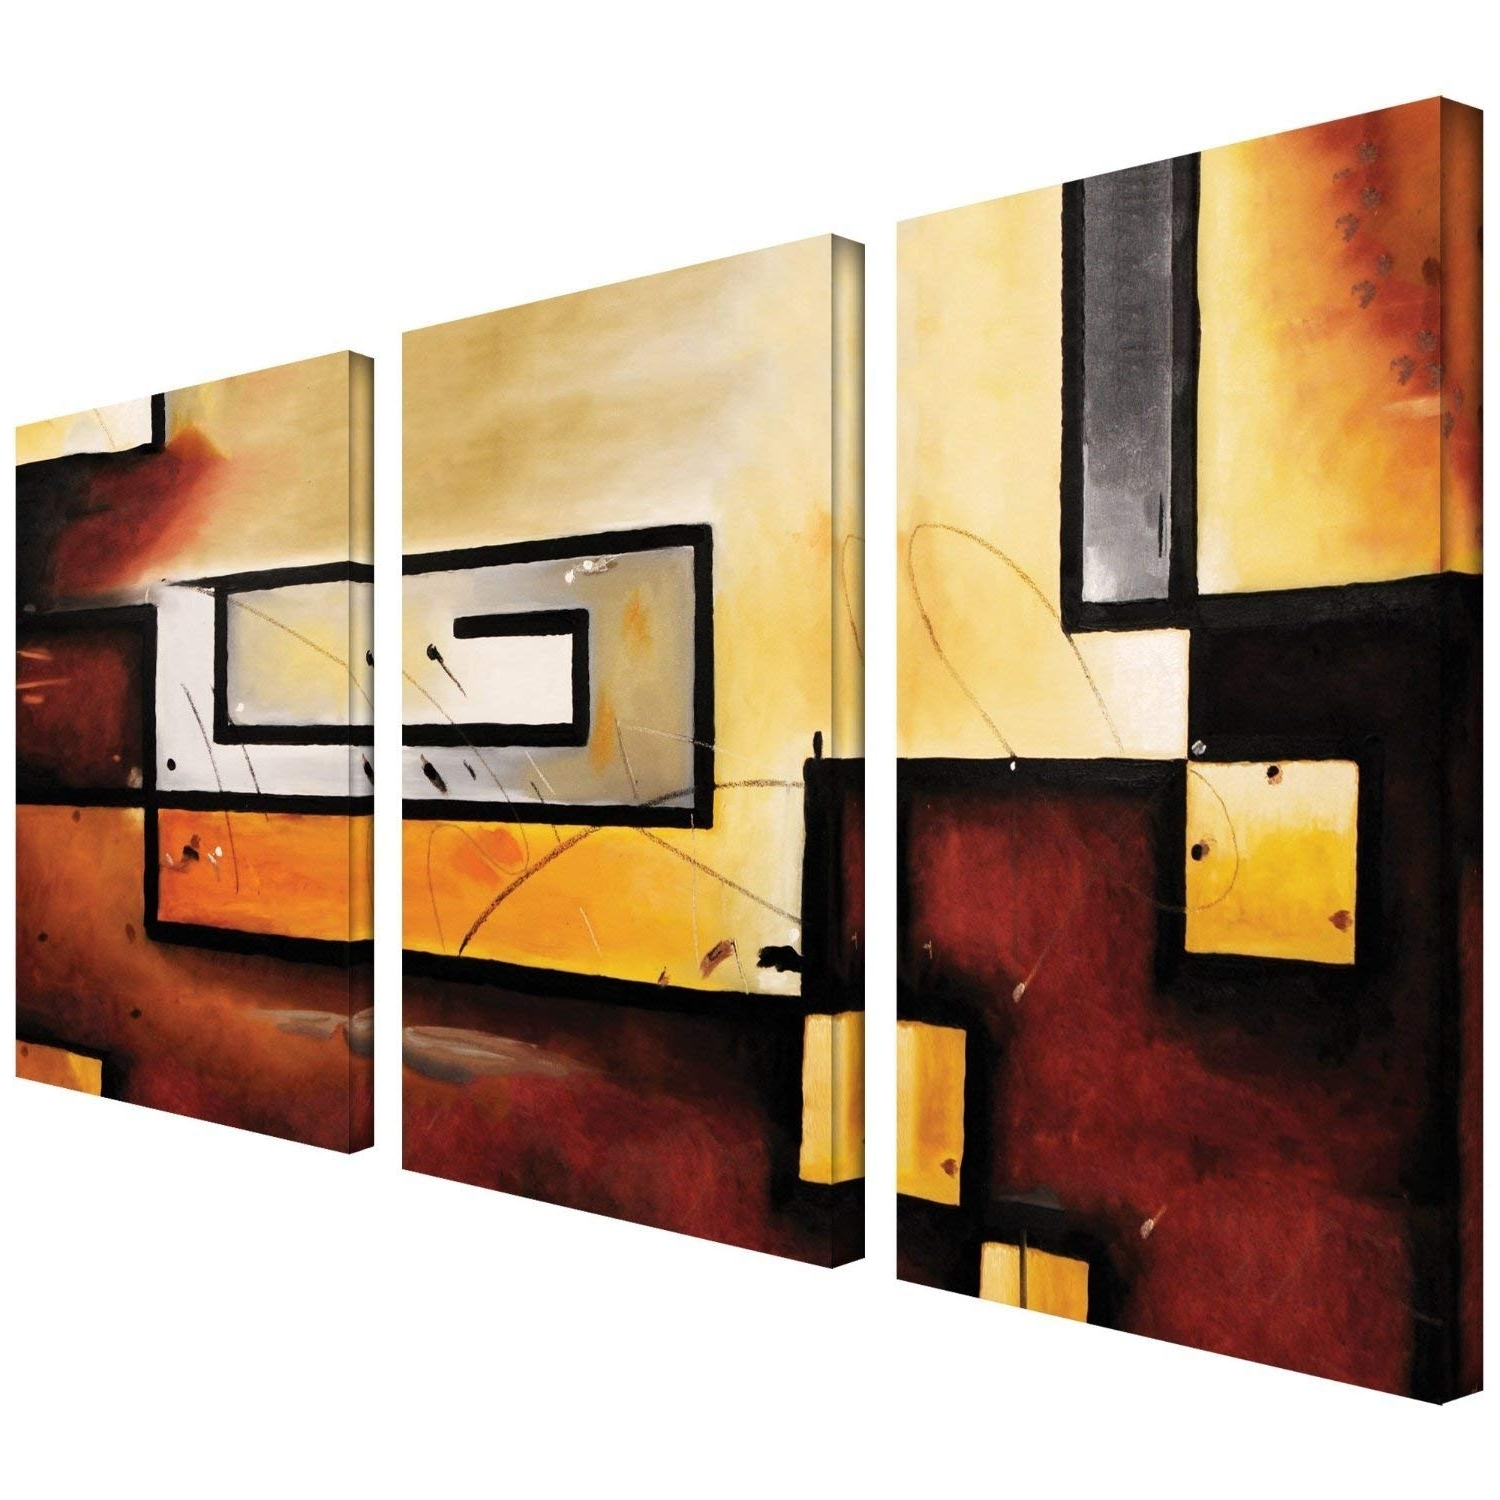 Widely Used Modern Canvas Wall Art With Amazon: Art Wall 3 Piece Abstract Modern Gallery Wrapped Canvas (View 5 of 15)